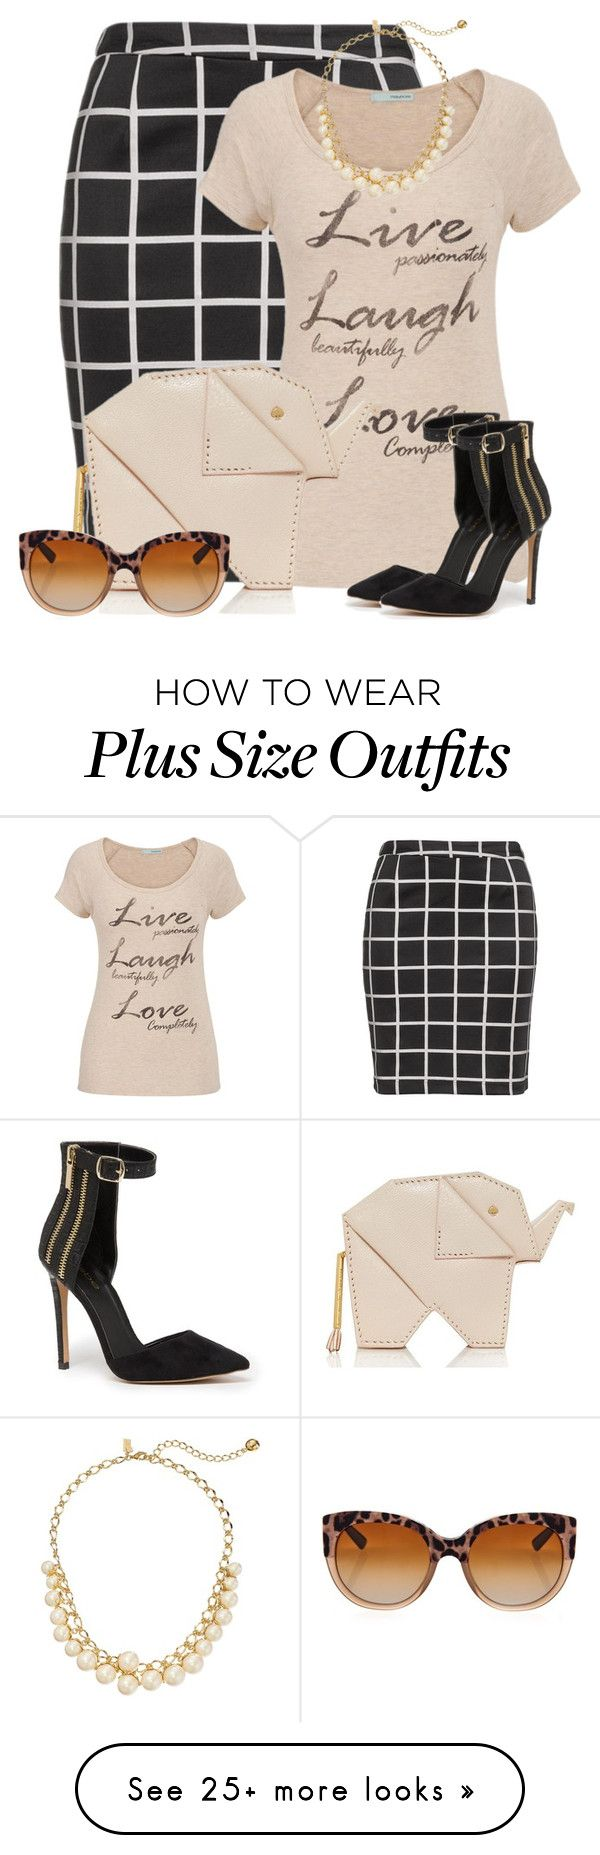 """""""Kate Spade Elephant Purse"""" by debpat on Polyvore featuring Zizzi, maurices, Kate Spade, Bebe and Dolce&Gabbana"""